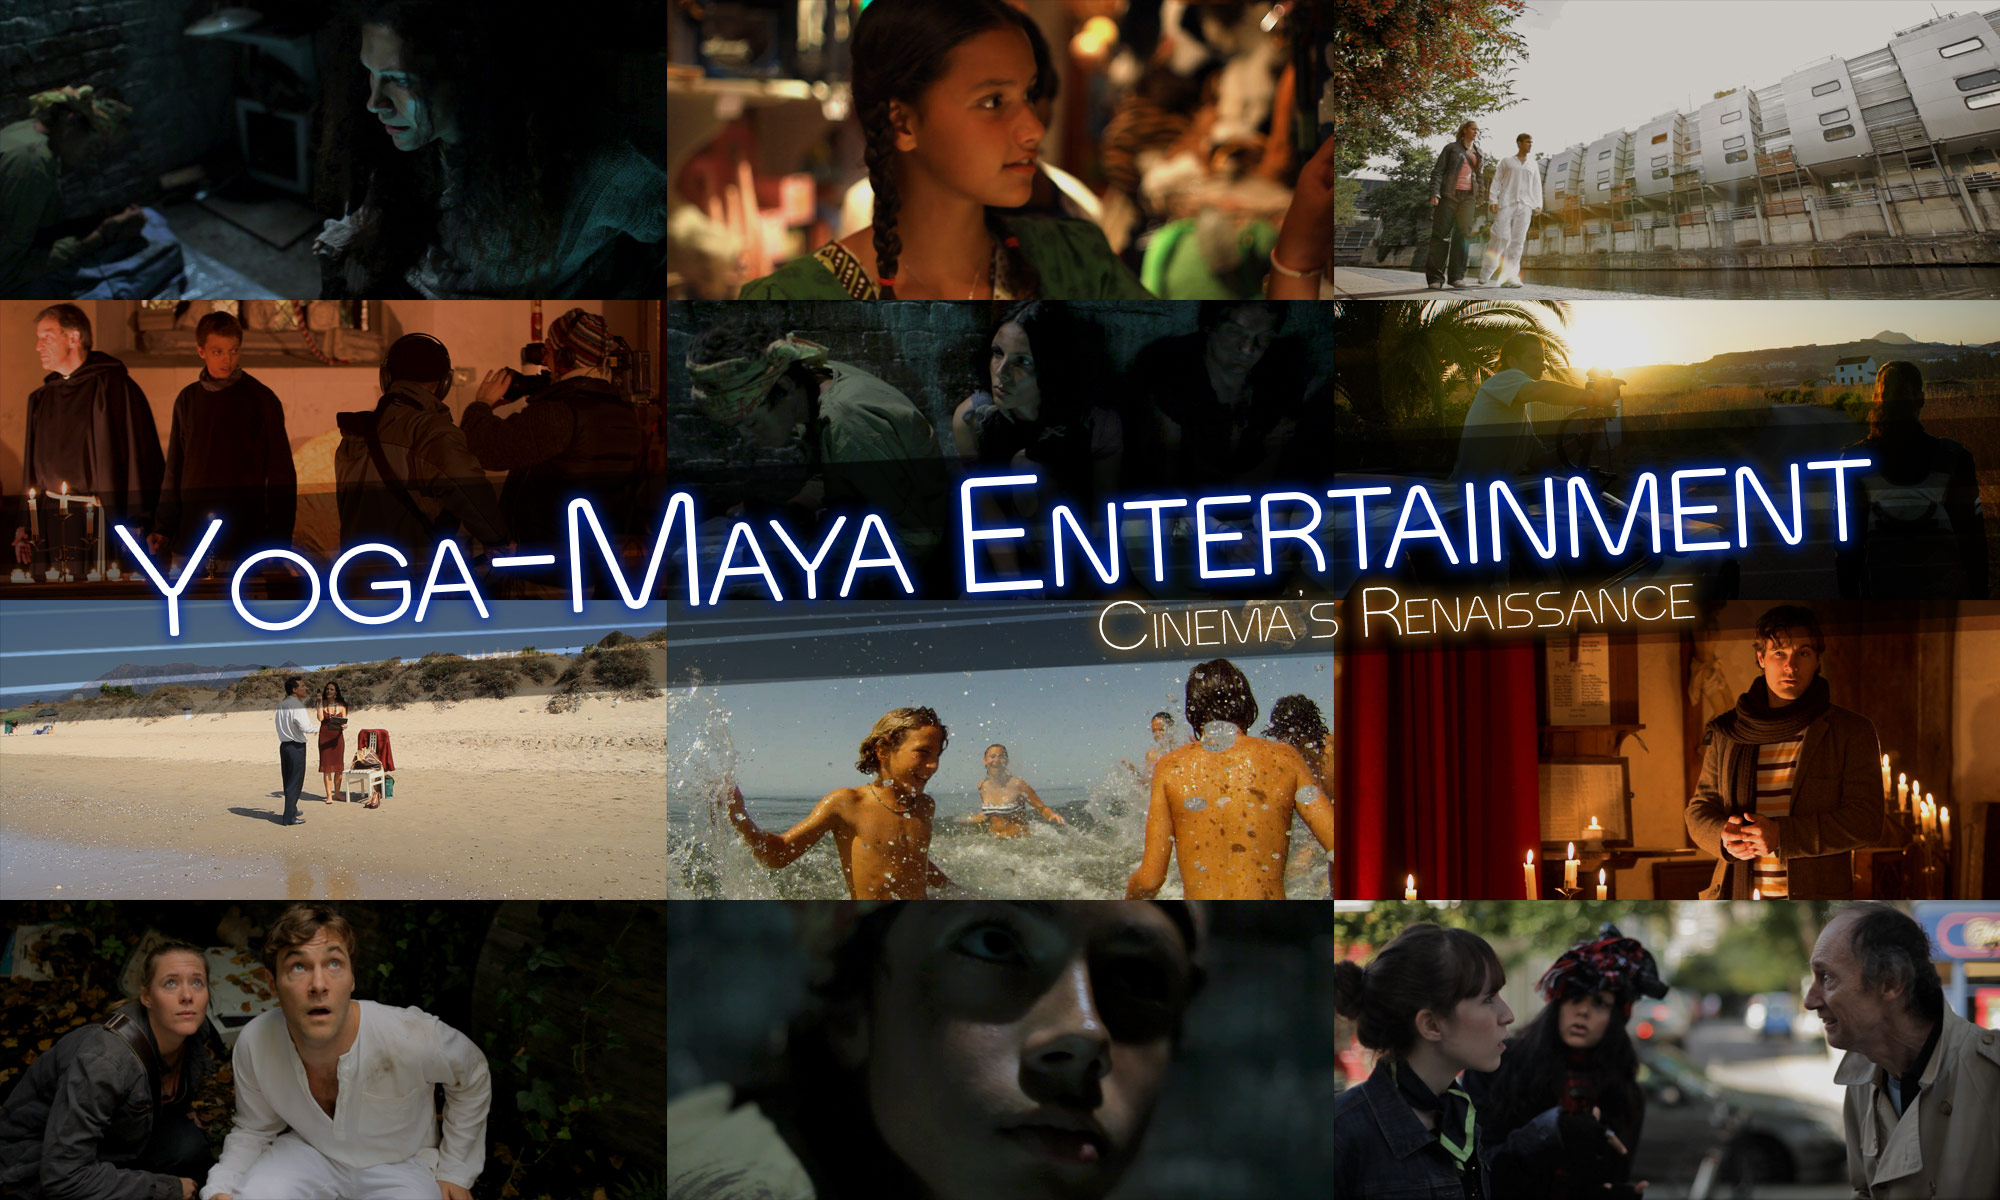 Yoga-Maya Entertainment